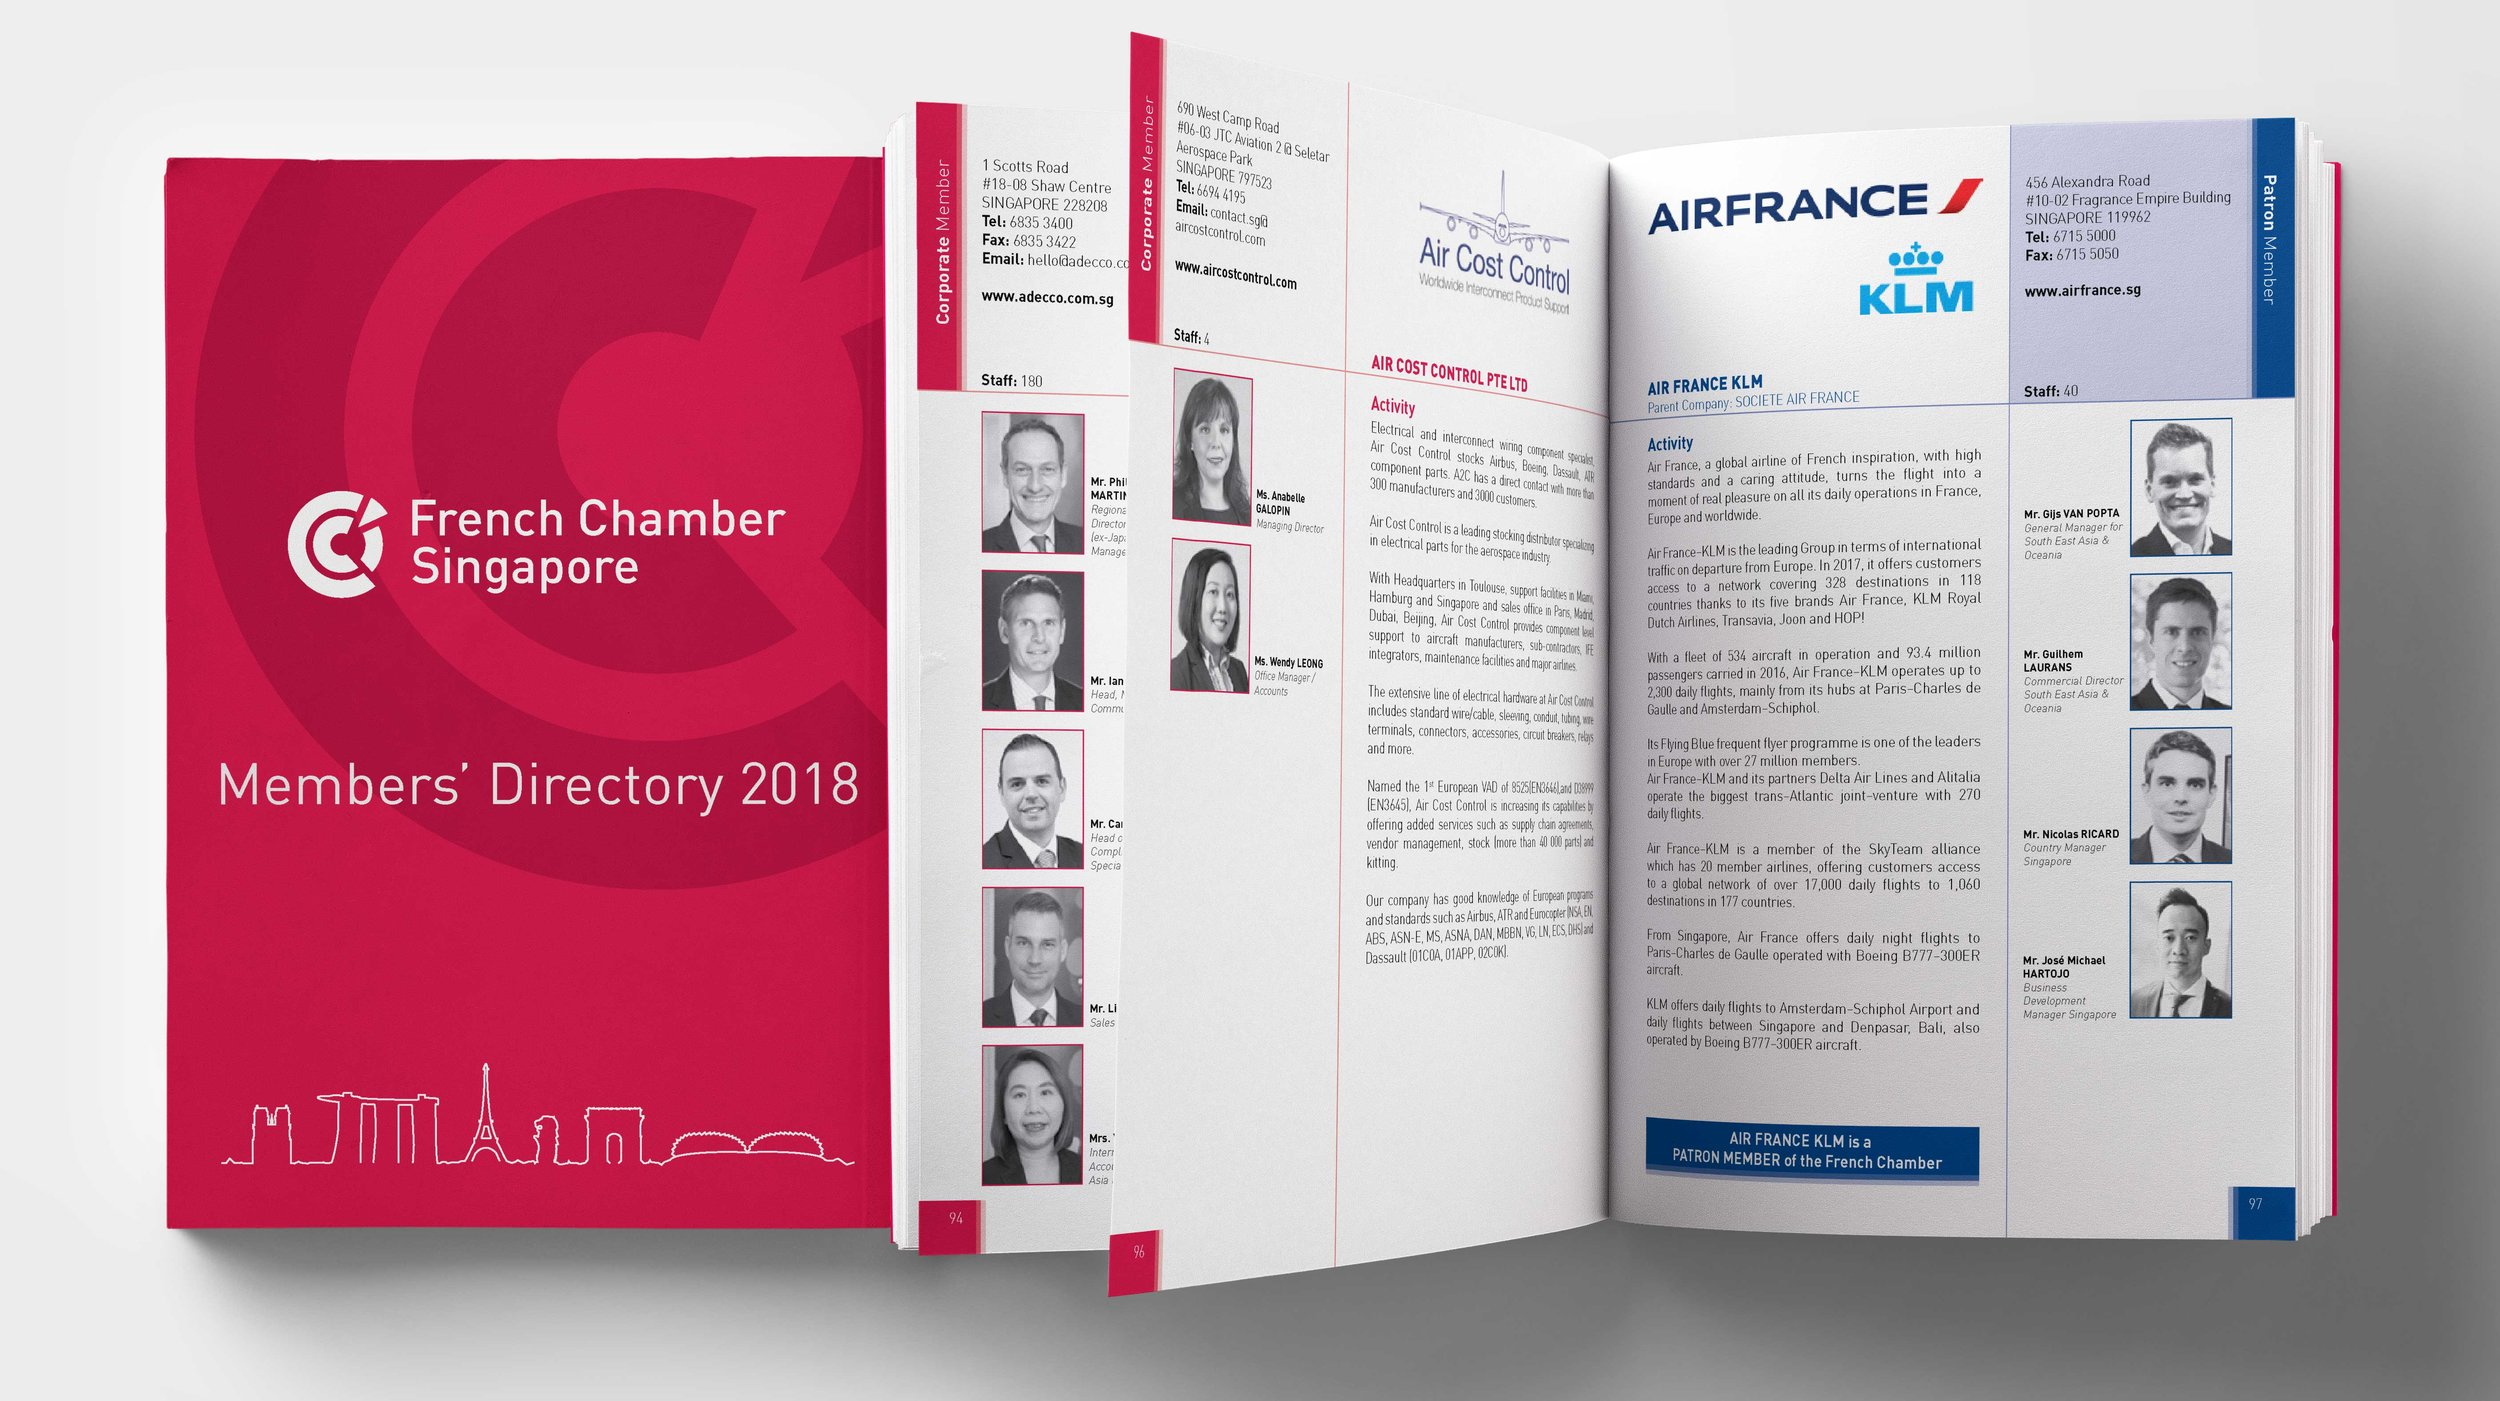 Members' Directory - A 800-page reference publication project-managed and designed by Leitmotif. This included directly liaising with contacts at 700 member companies, handling and